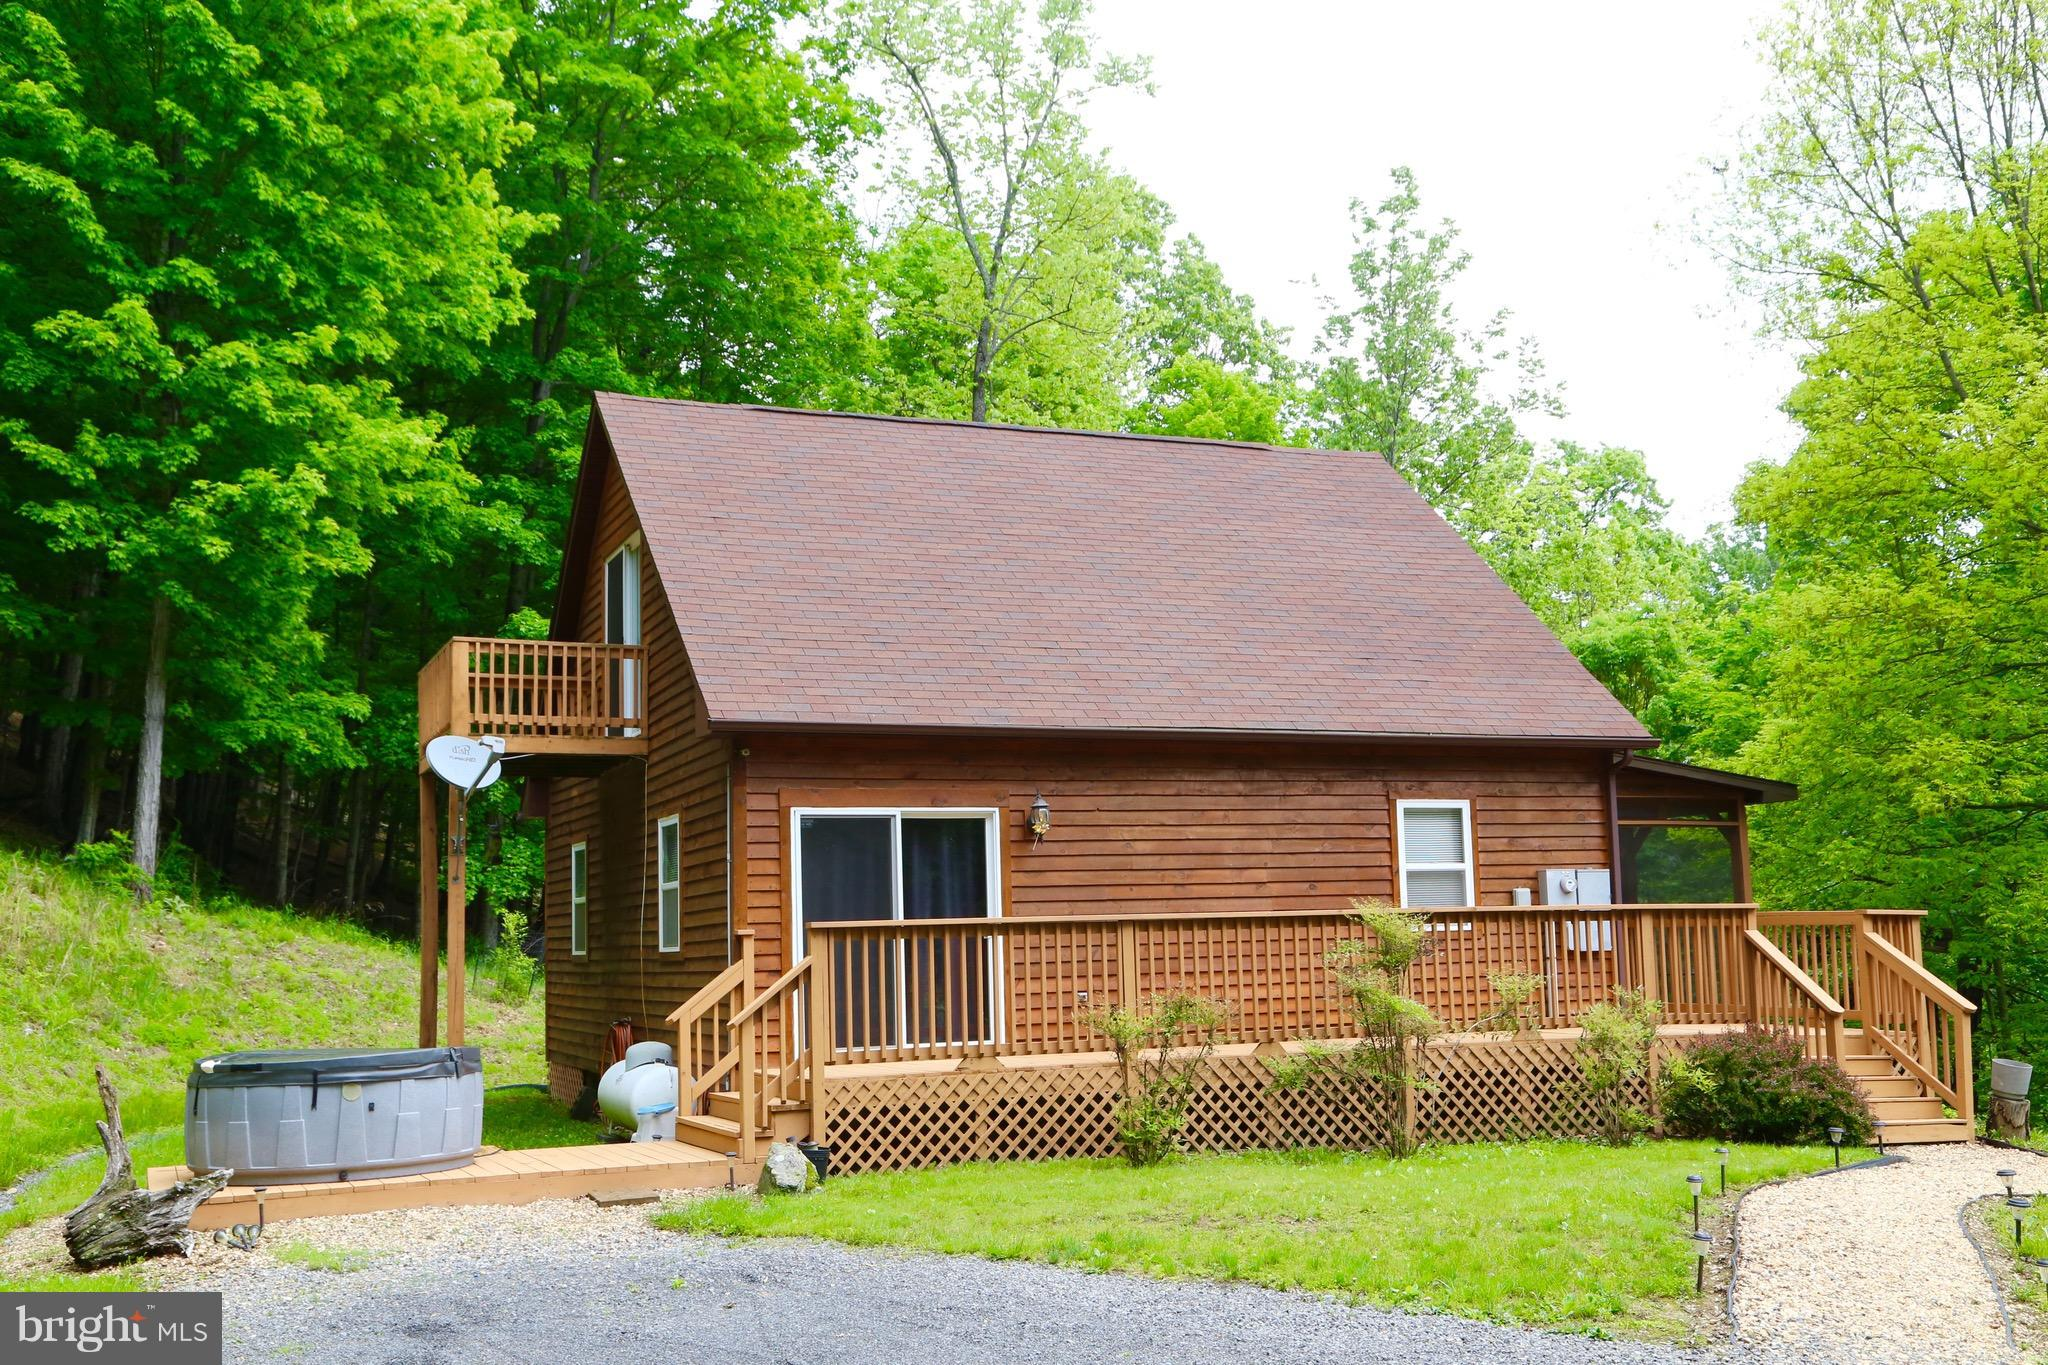 553 WARDEN LAKE AB DRIVE, WARDENSVILLE, WV 26851